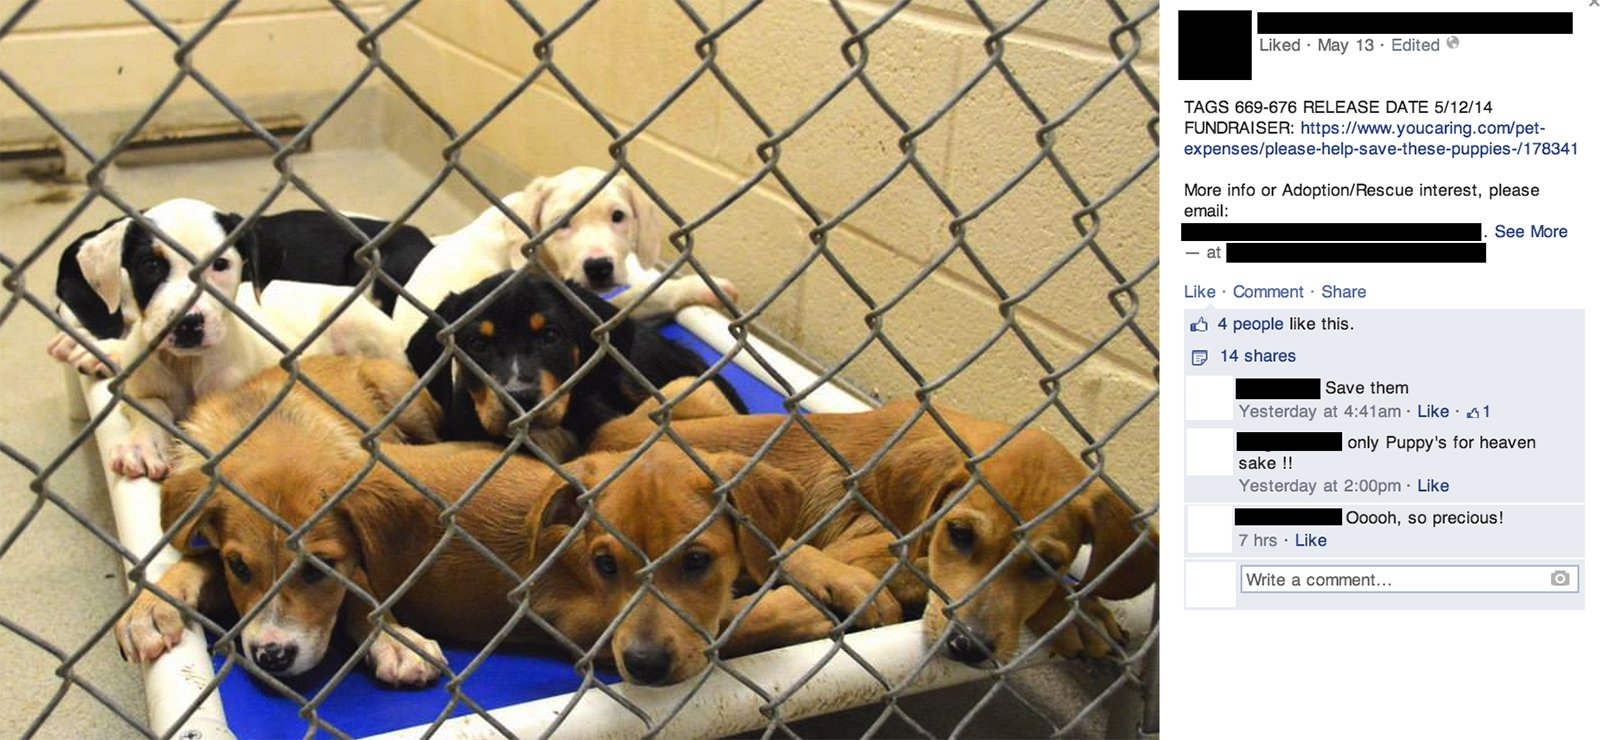 The Love/Hate Relationship of Social Media and Rescue showing puppies in a pound.